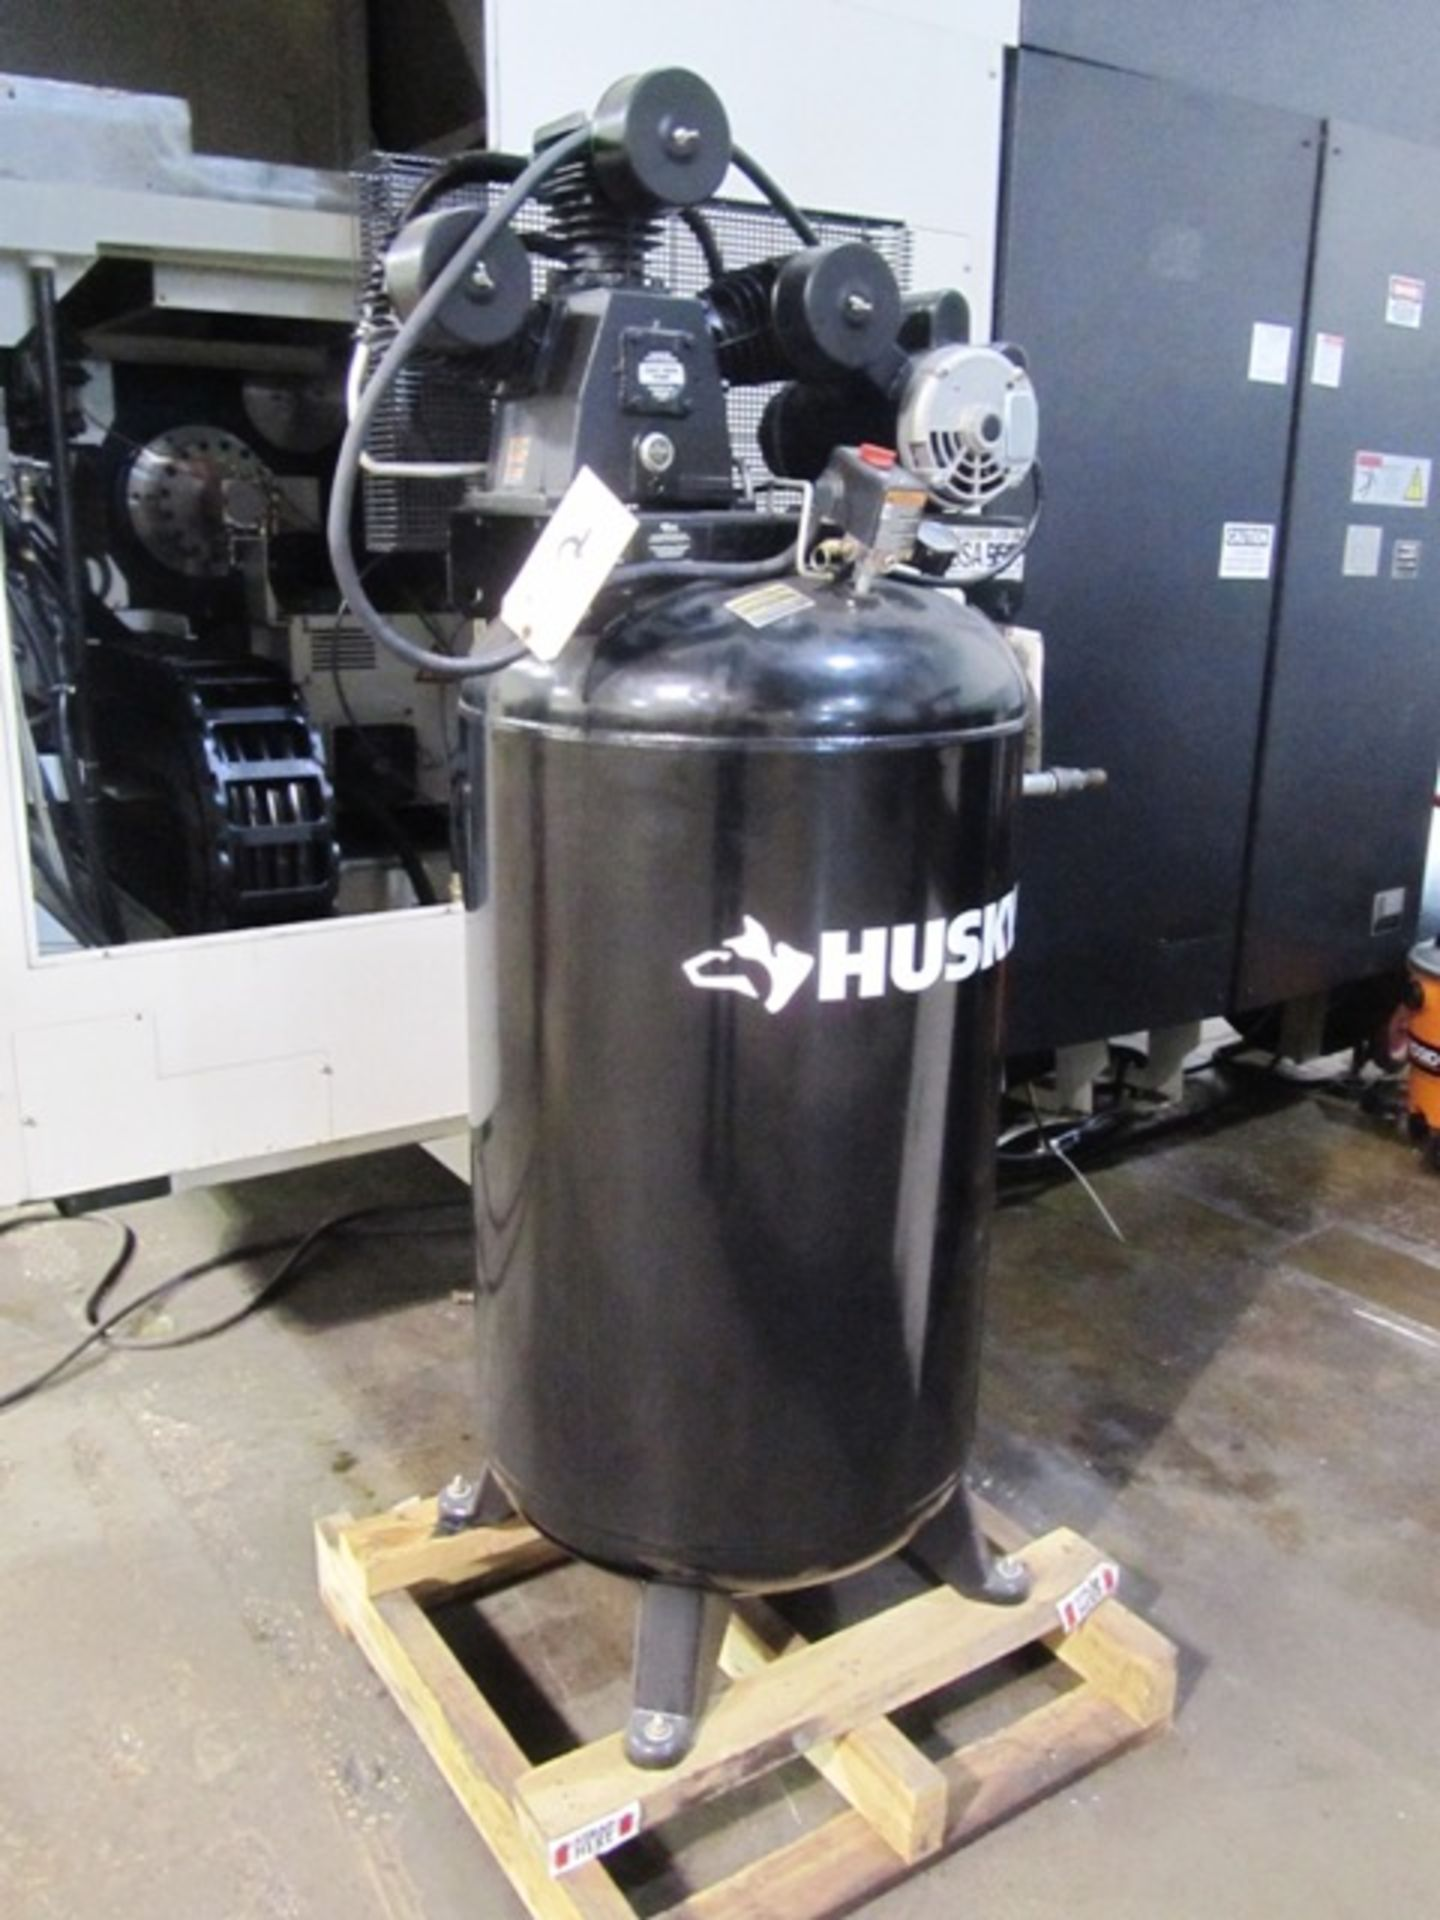 Lot 2 - Husky 3 Stage 4.7 HP 80 Gallon Vertical Tank Air Compressor